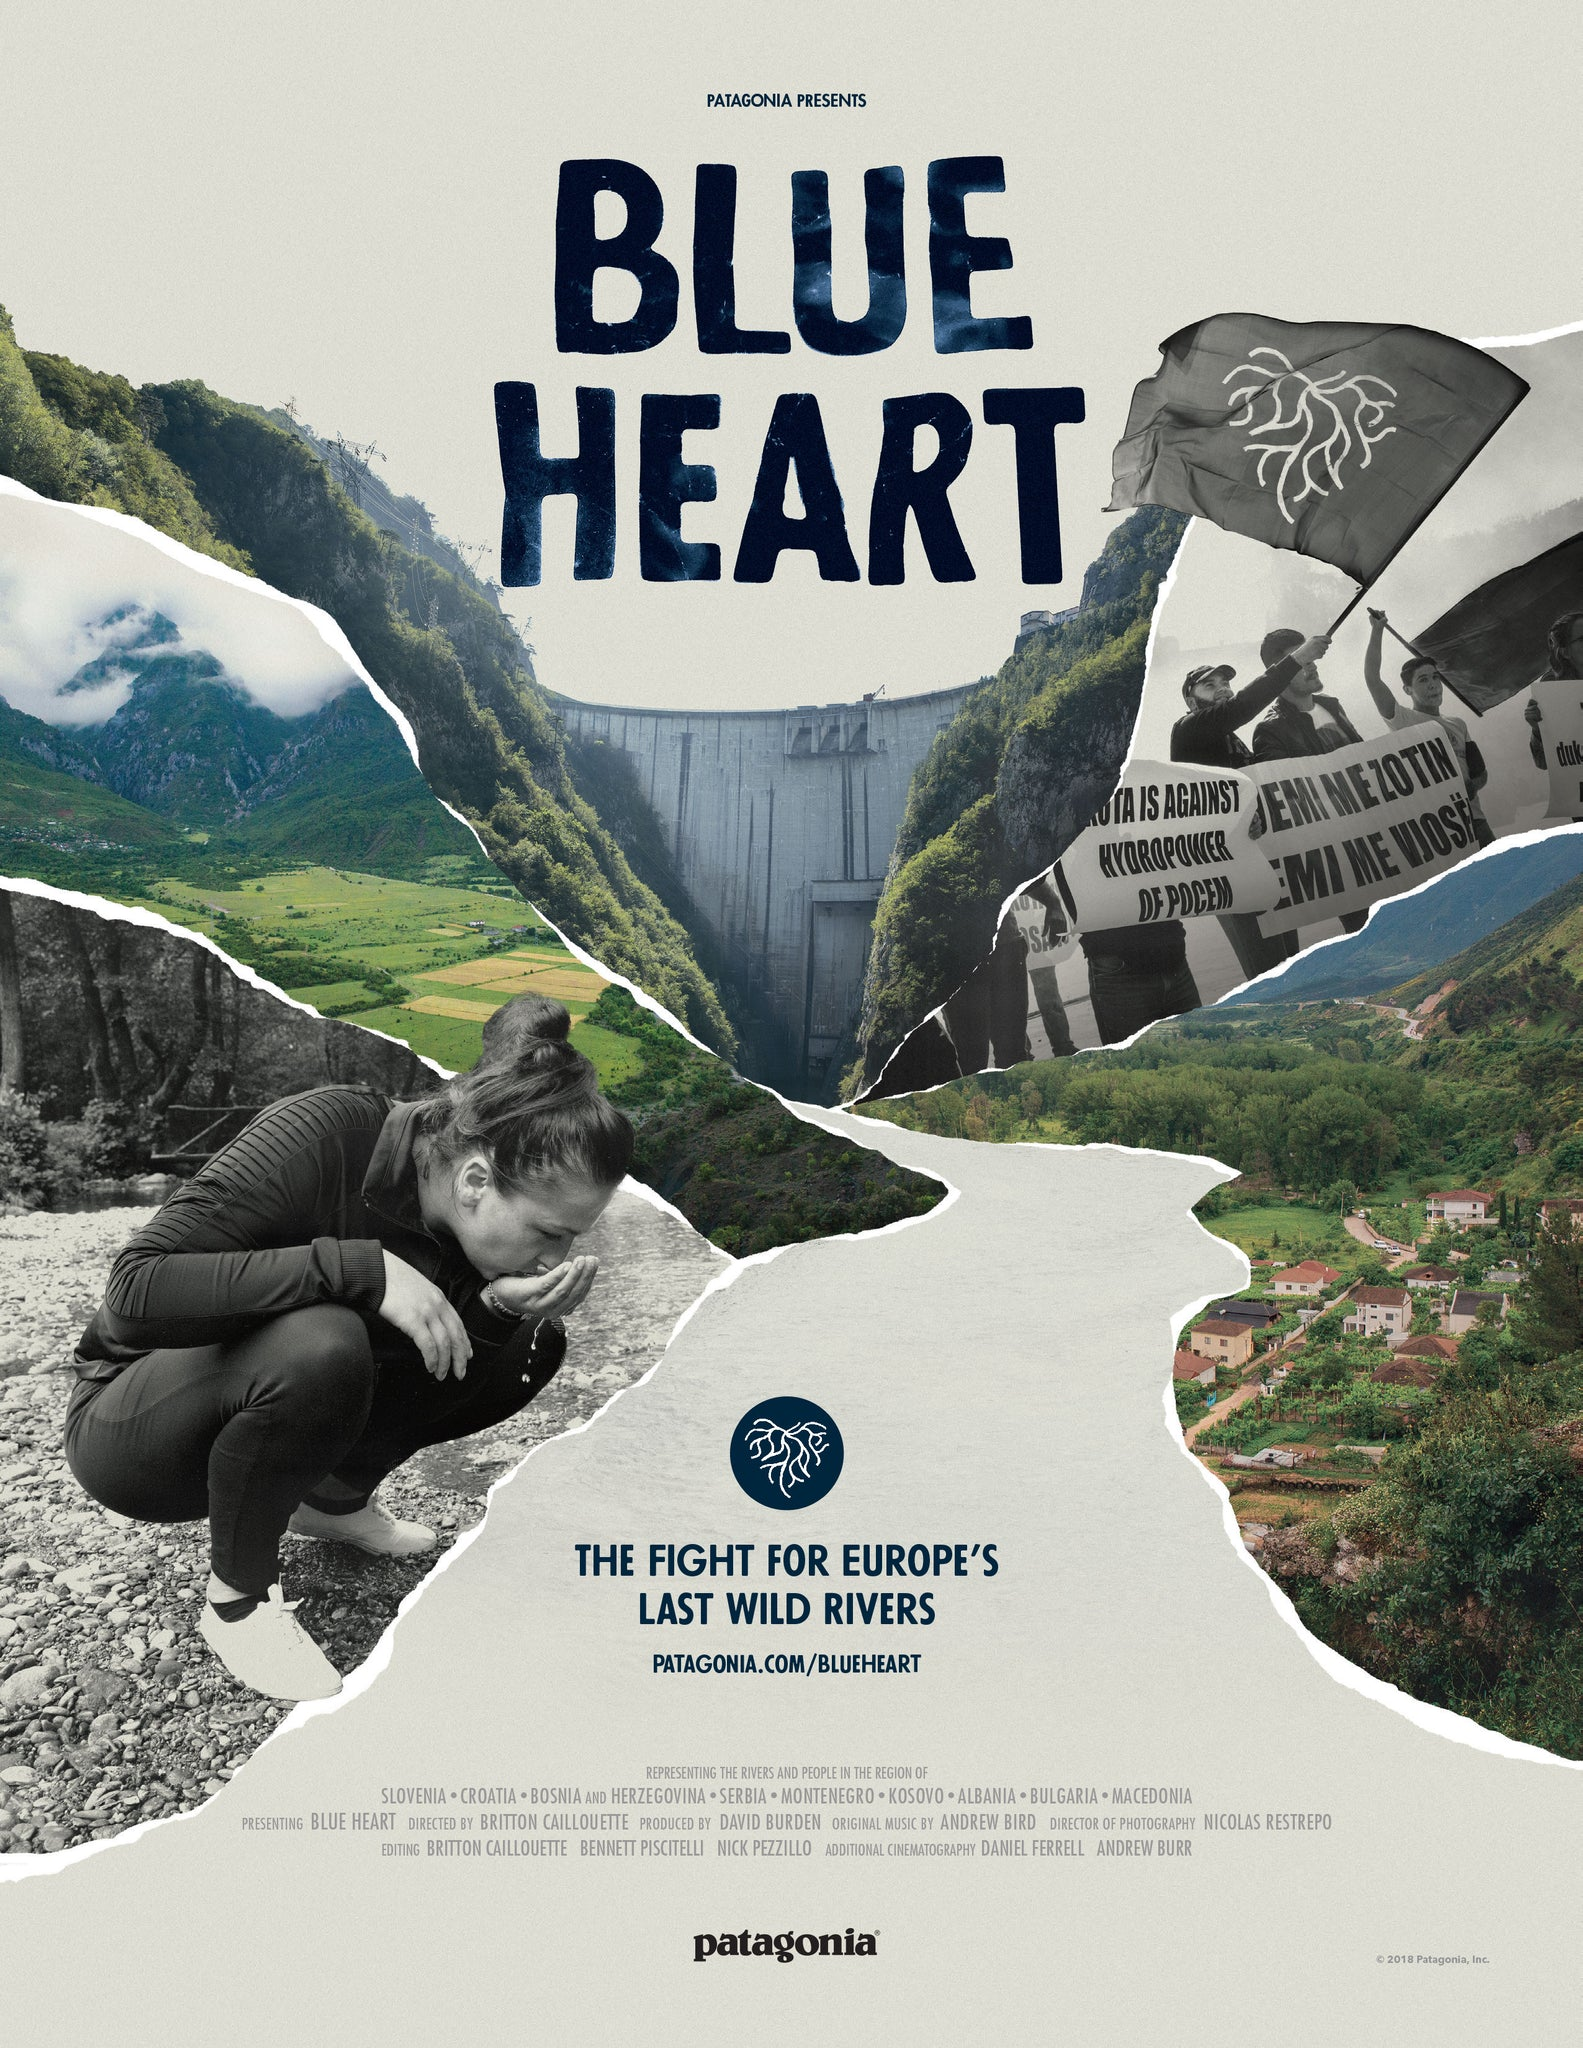 BLUE HEART PATAGONIA POSTER